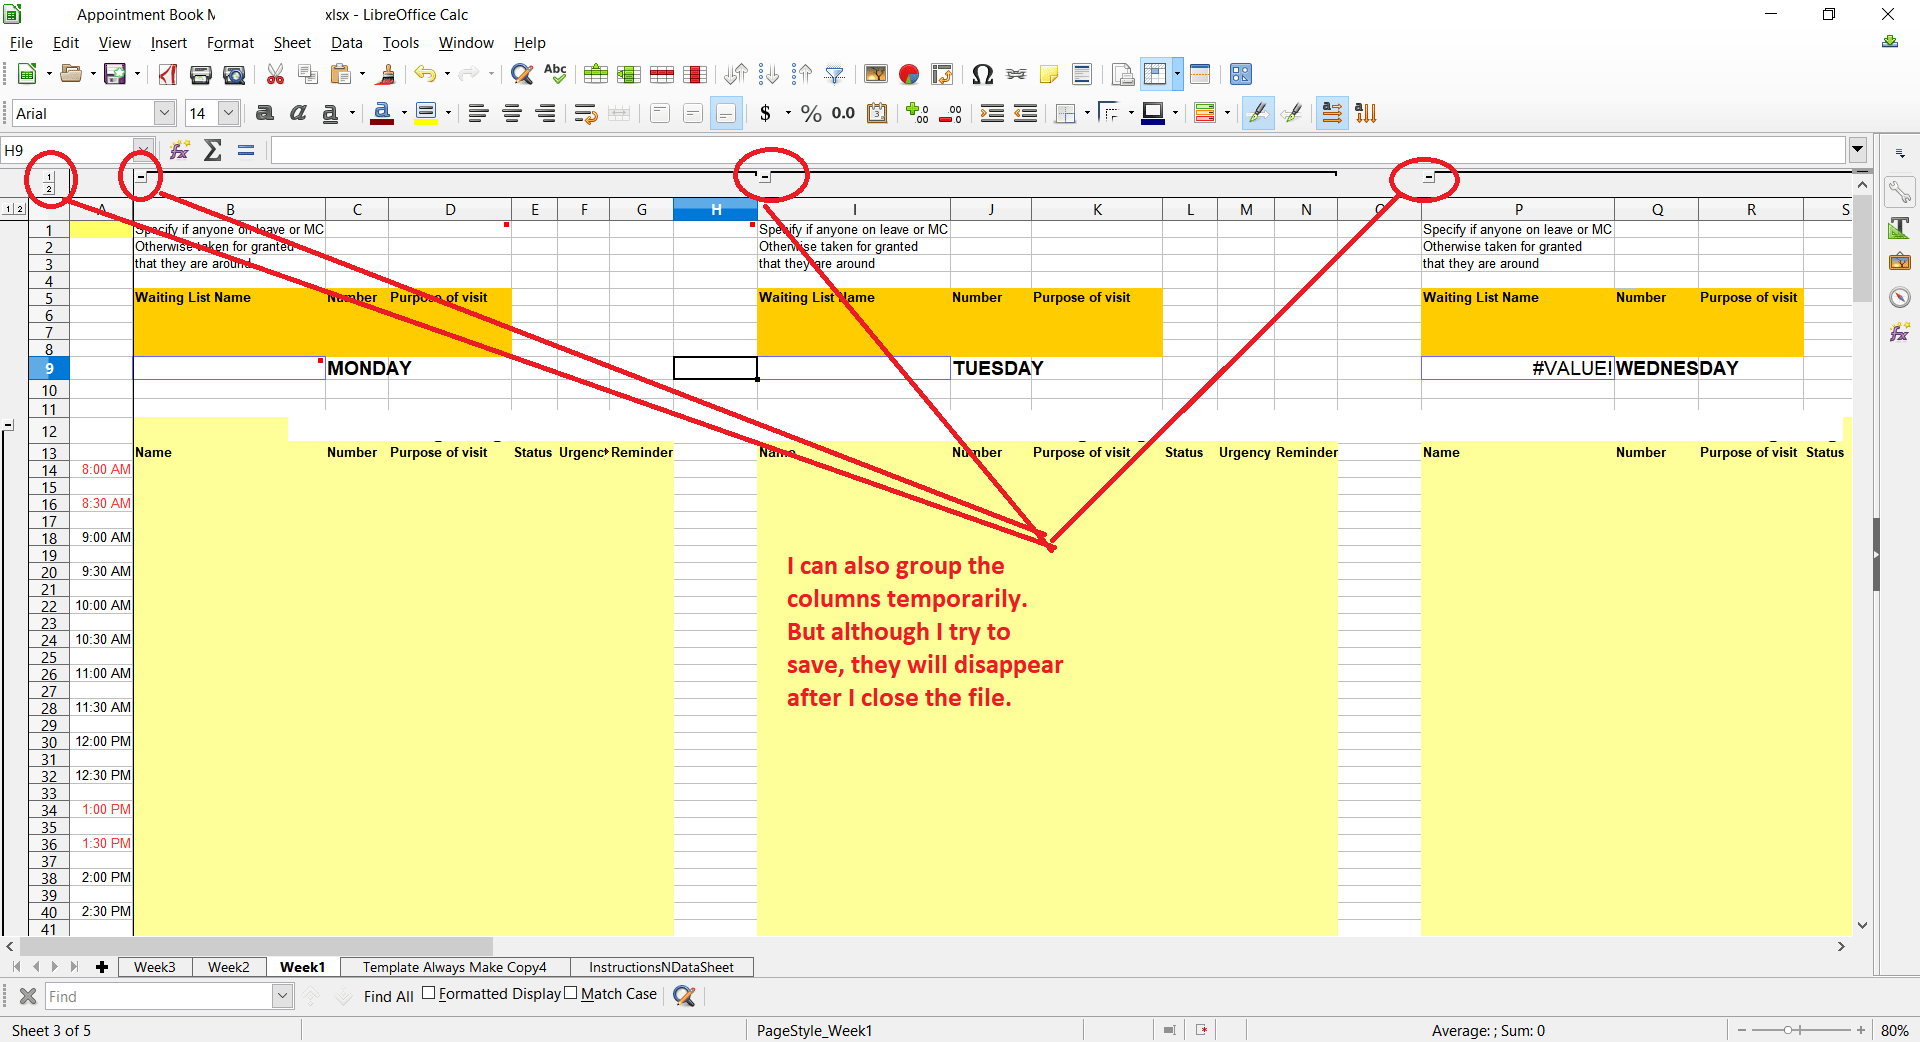 How Do I Preserve Column Grouping In Libreoffice Calc